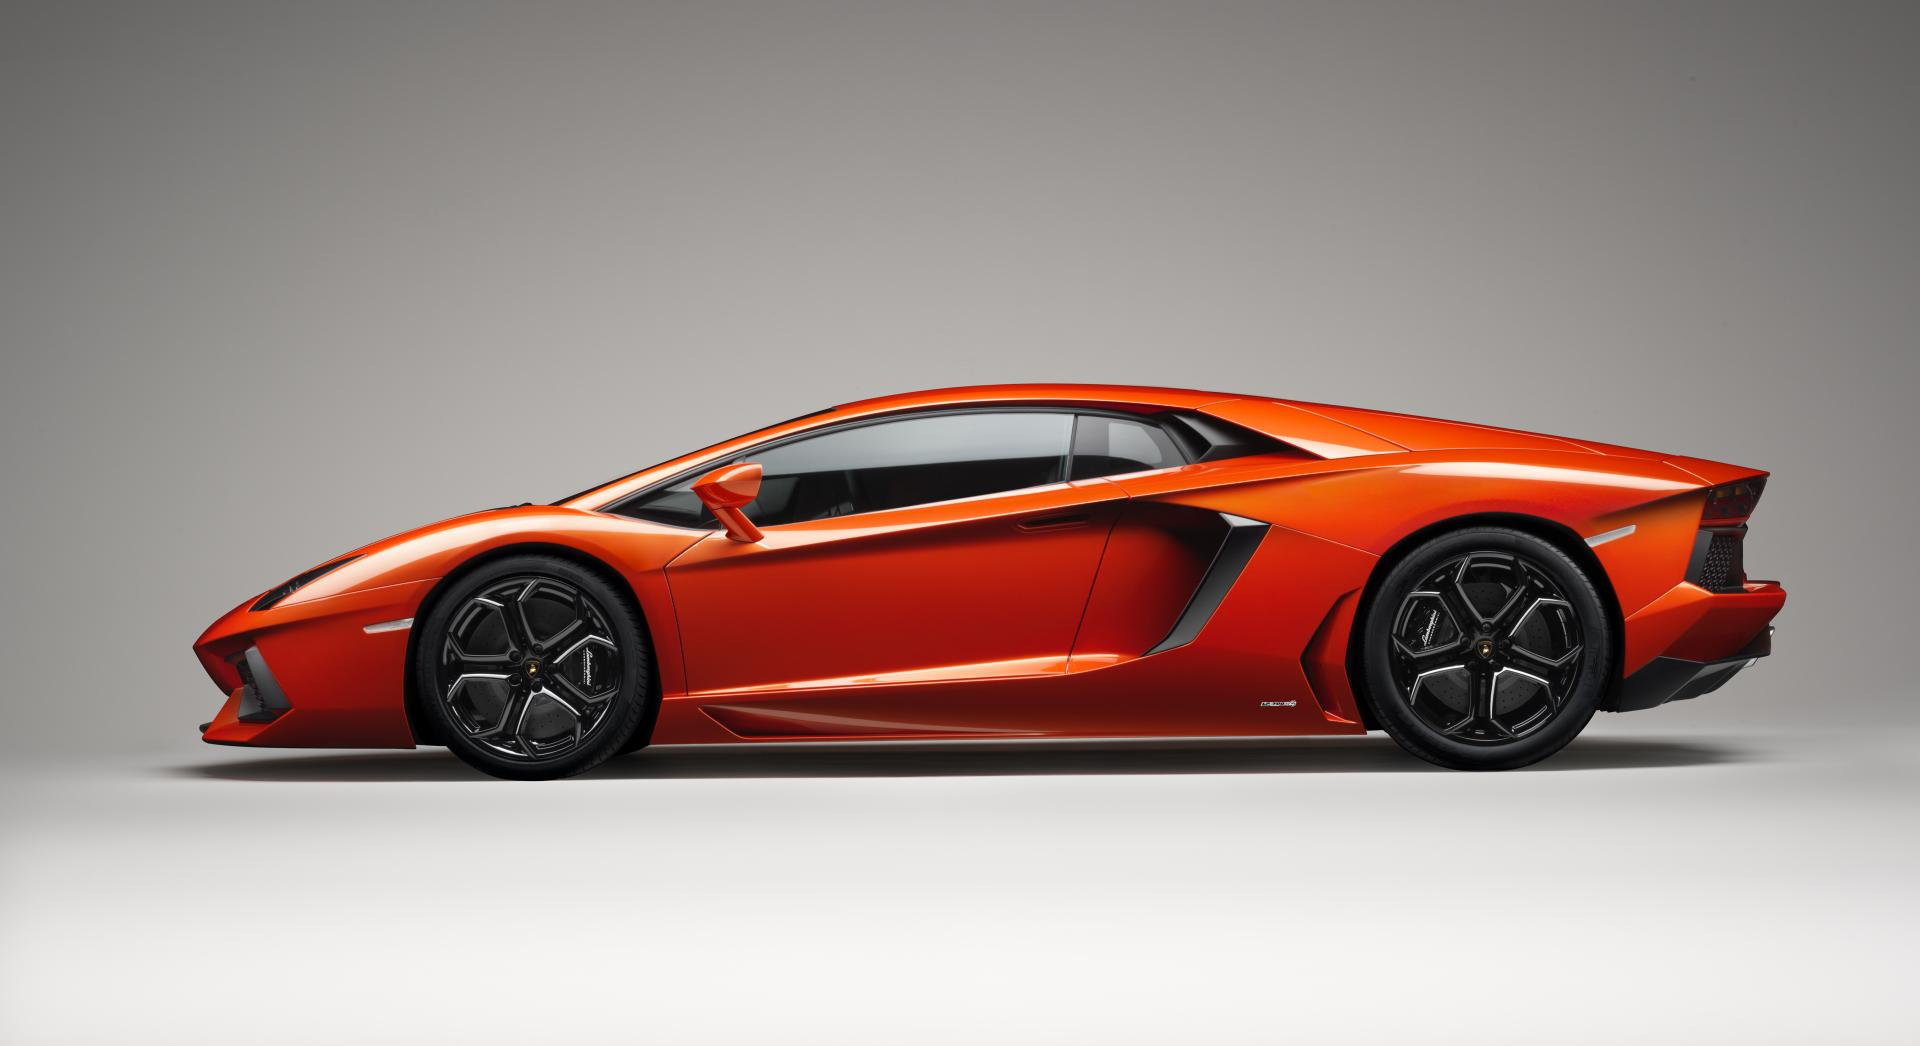 2015-Lamborghini-Aventador-High-Resolution-Wallpaper-l2wdd-Free